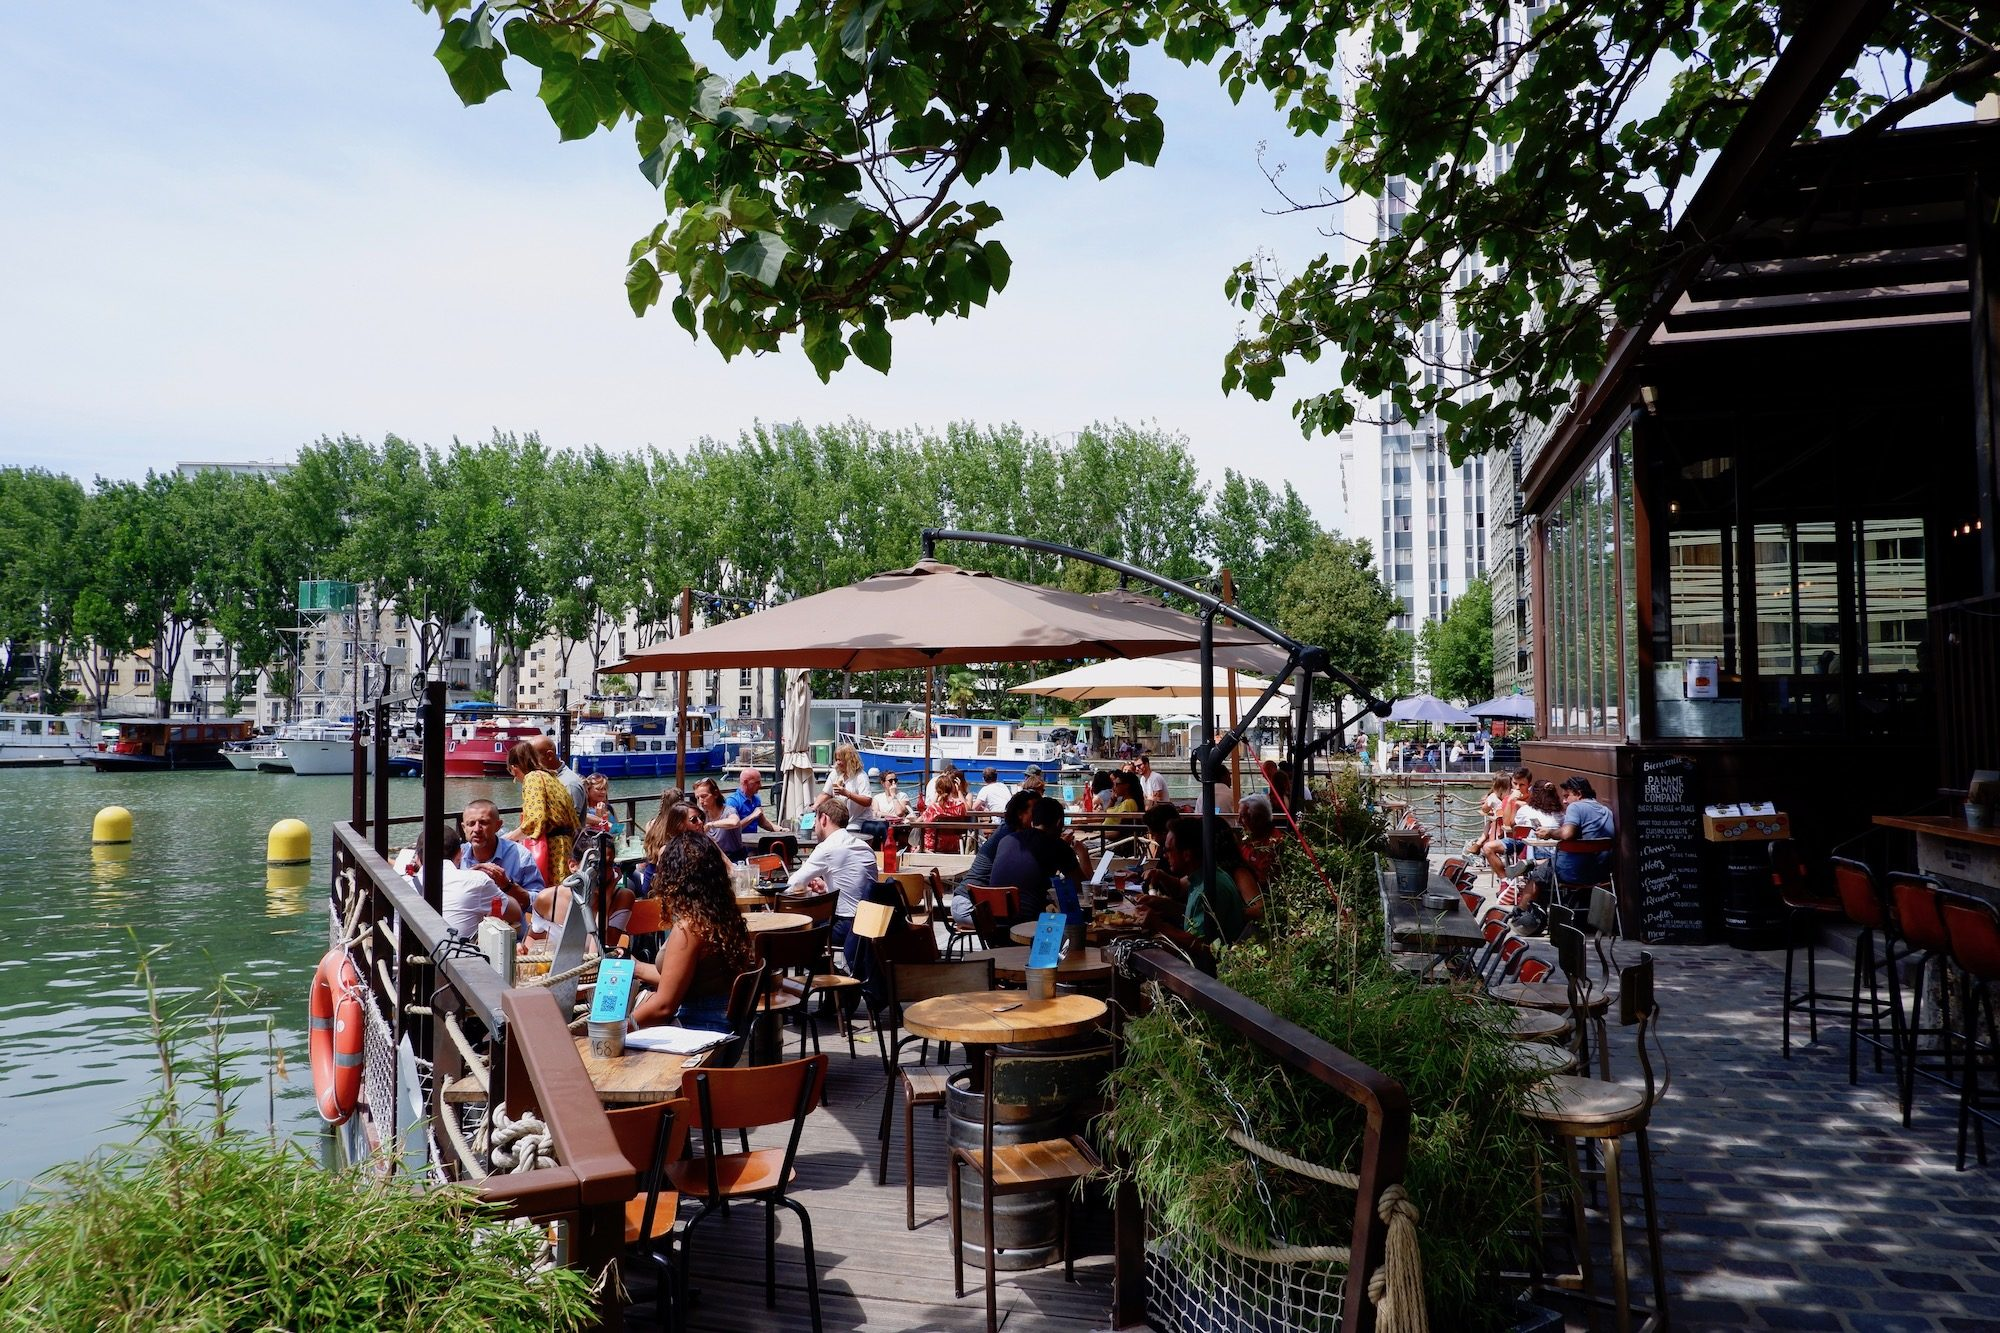 The terrace reaching out across the water of the Canal de l'Ourcq at the Paname Brewing Company in Paris on a sunny summer's day.